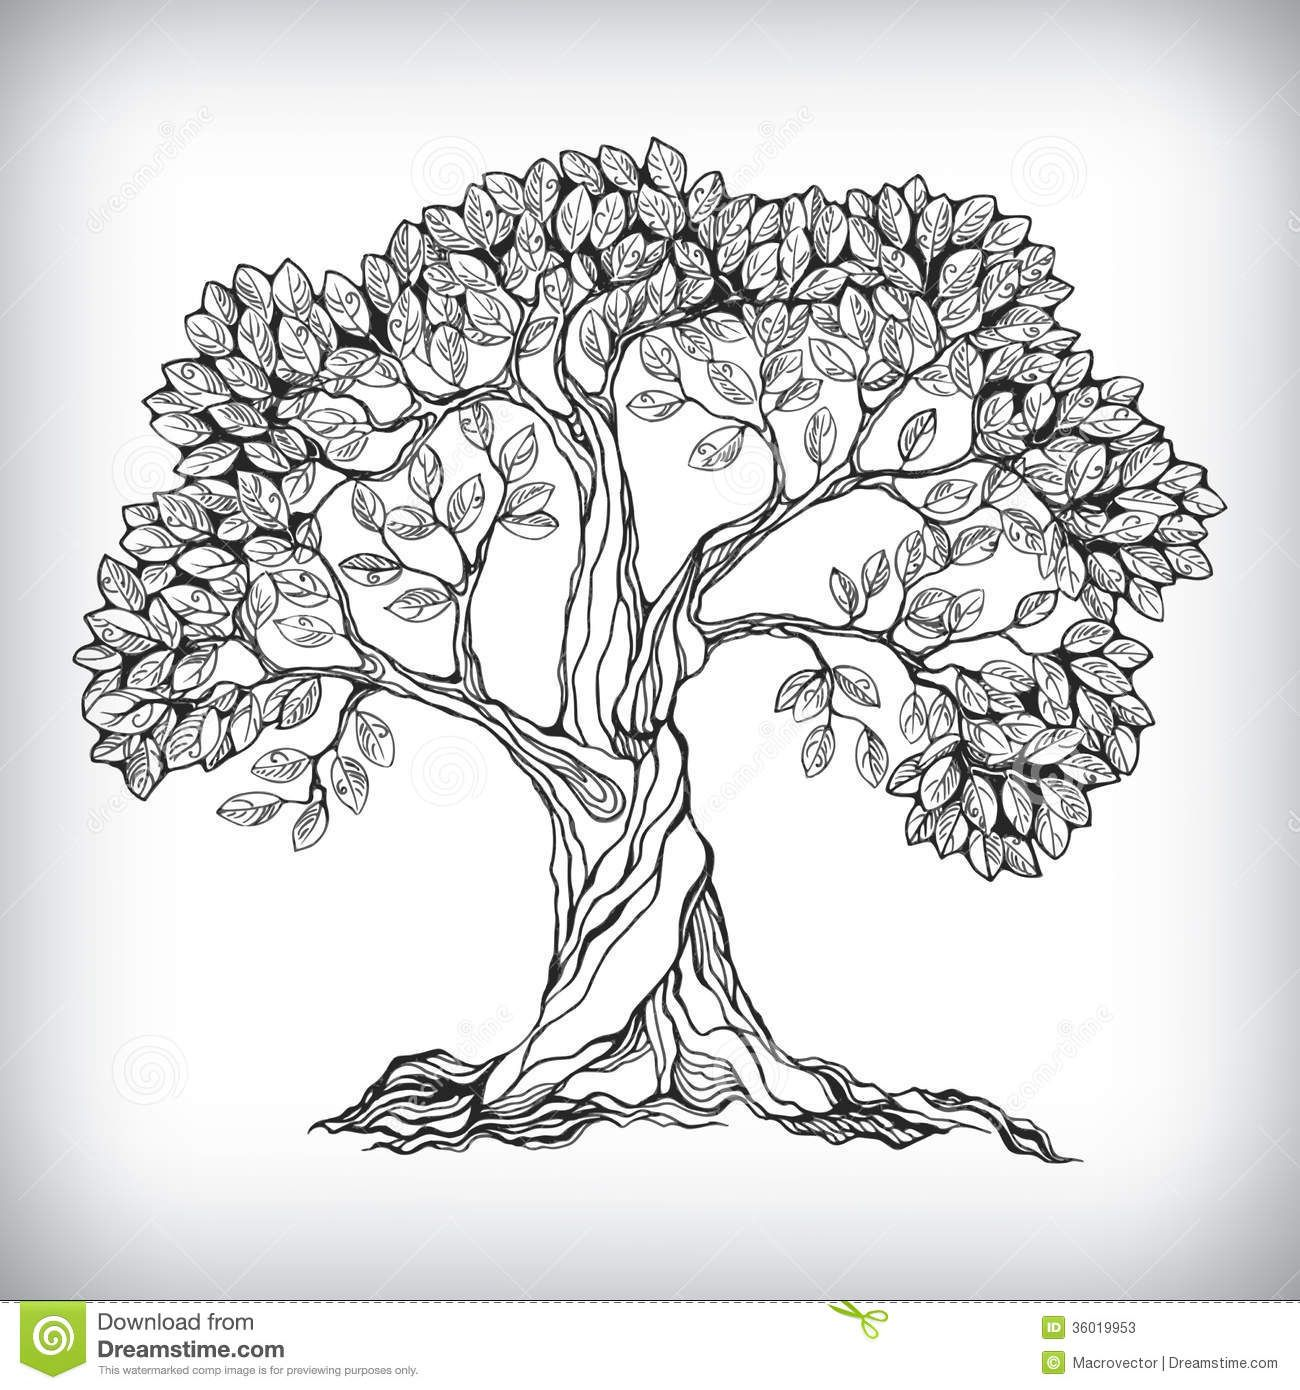 Charmant Hand Drawn Tree Symbol   Download From Over 28 Million High Quality Stock  Photos, Images